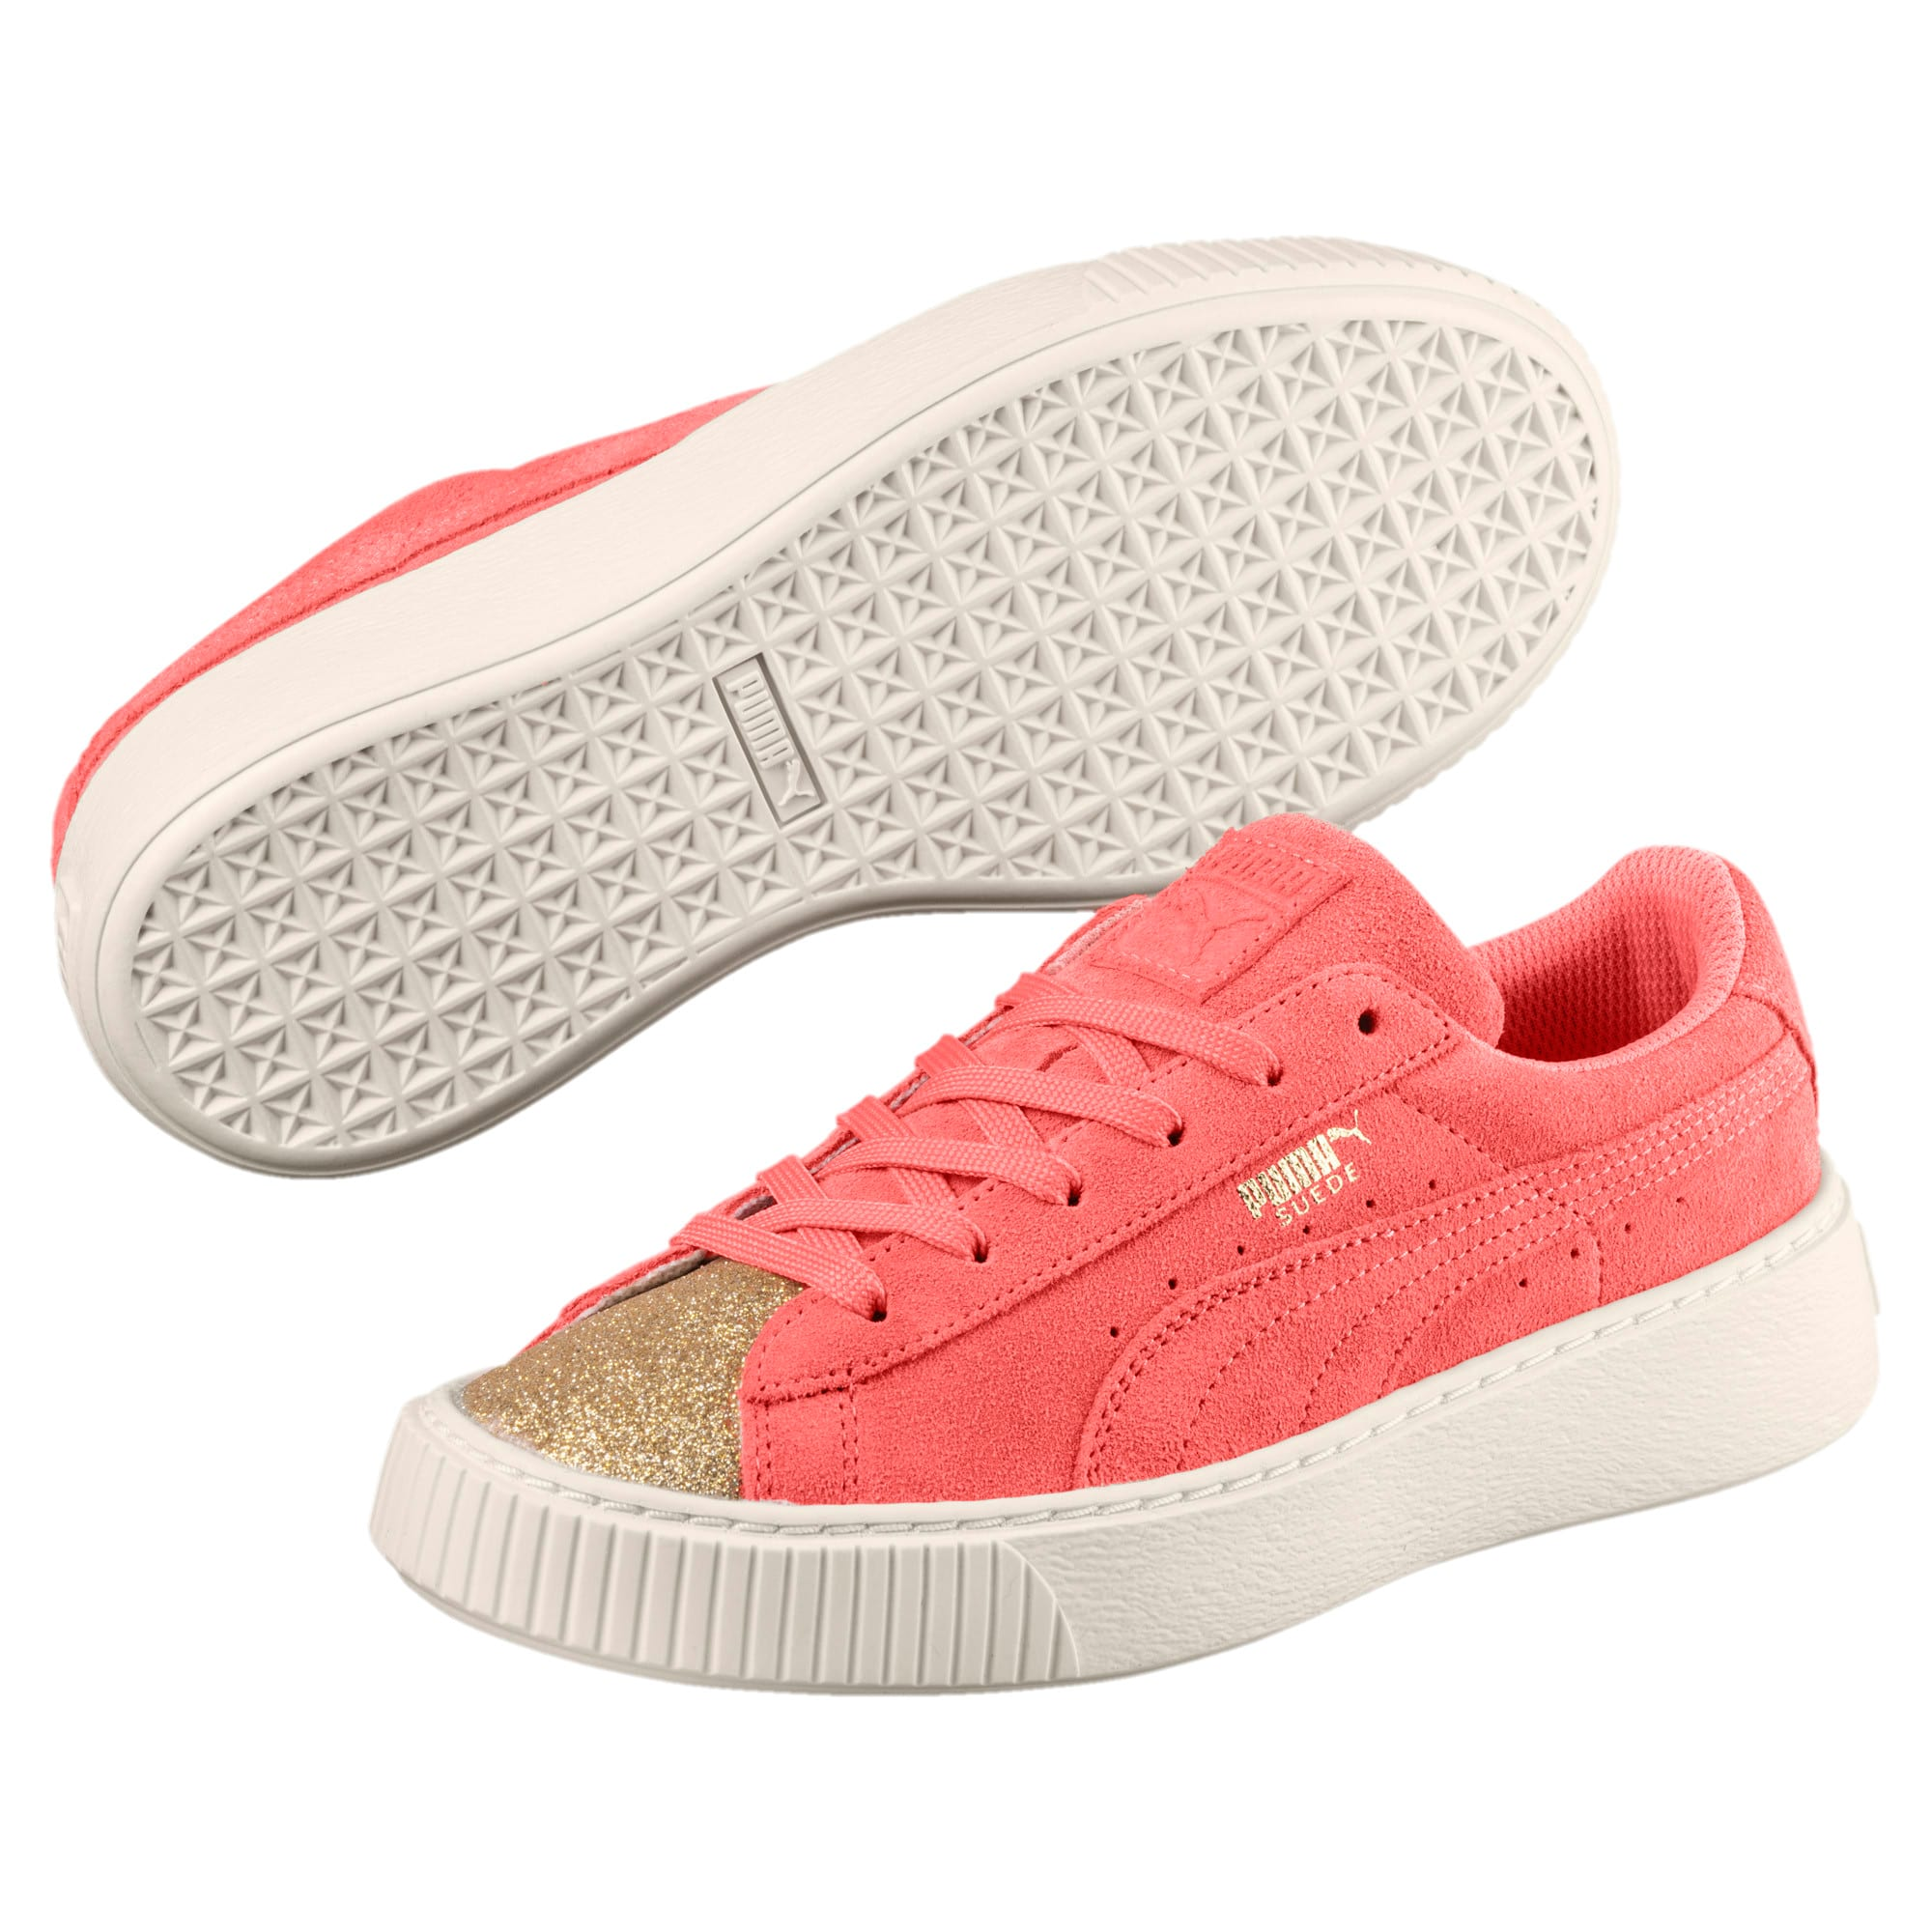 Thumbnail 2 of Suede Glam Girl's Sneakers JR, Puma Team Gold-Shell Pink, medium